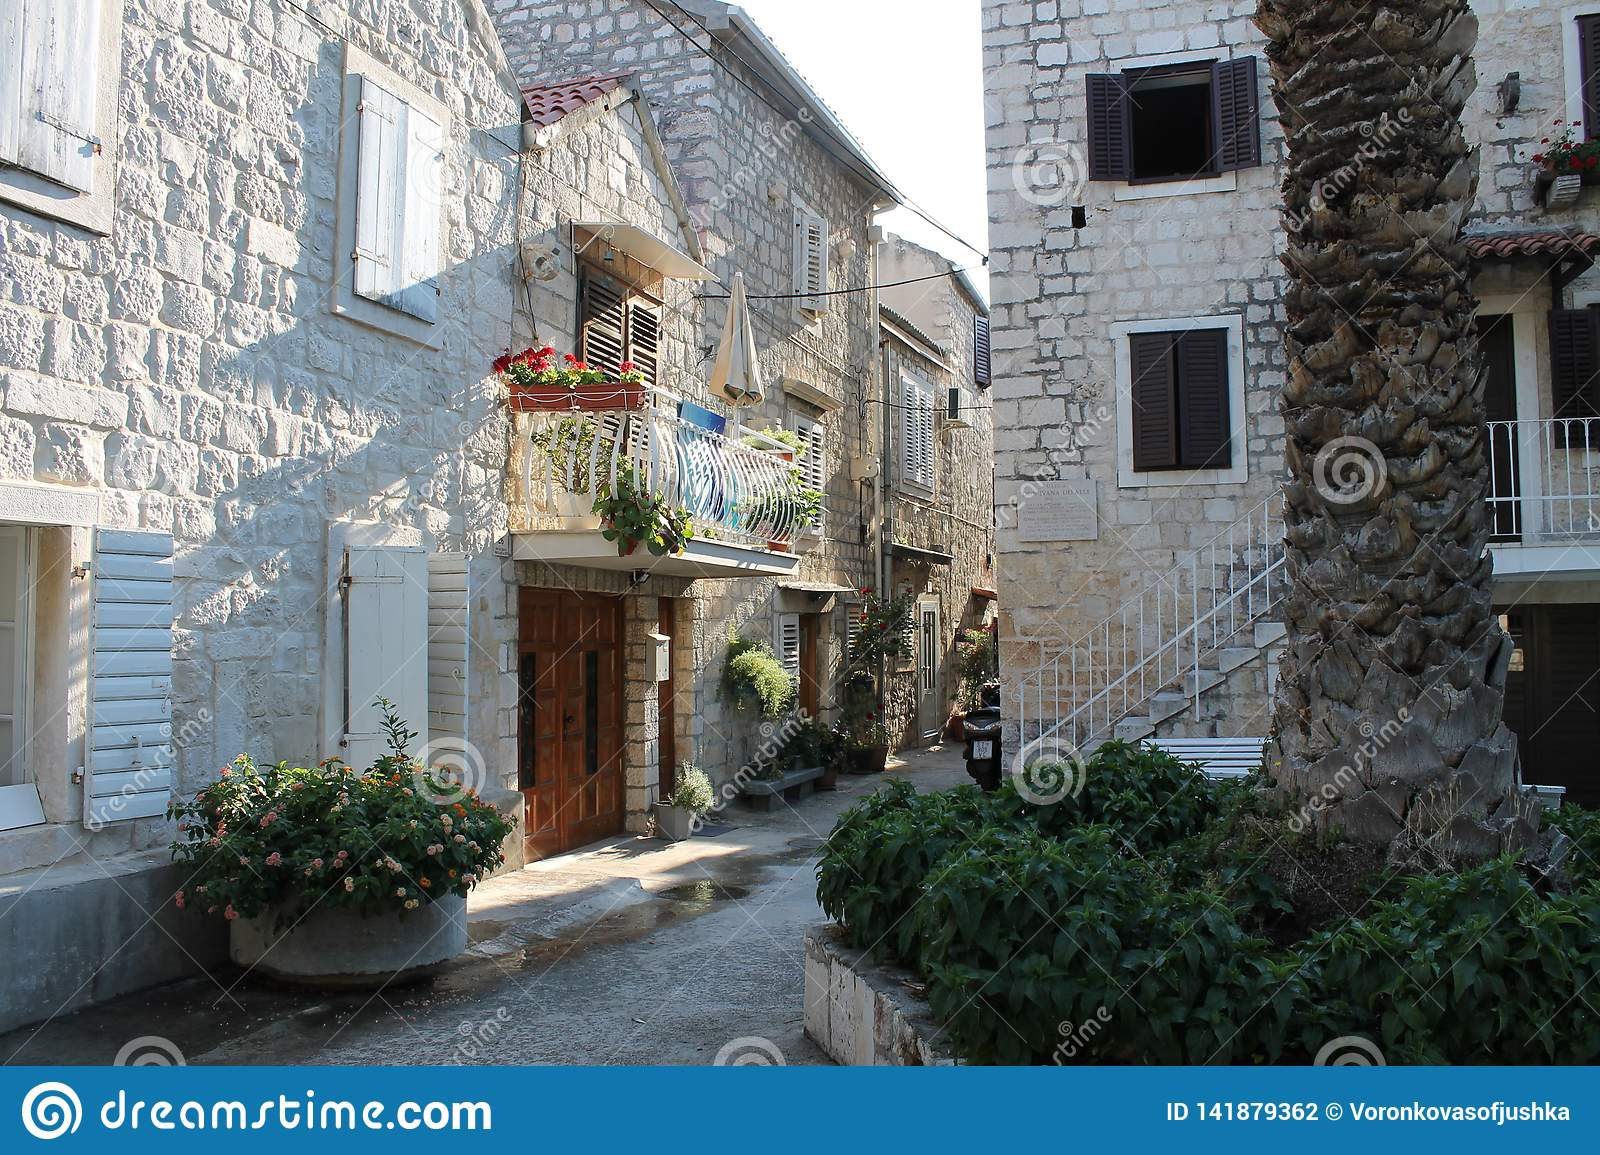 Narrow streets of Trogir, Croatia with white stone houses in the old town